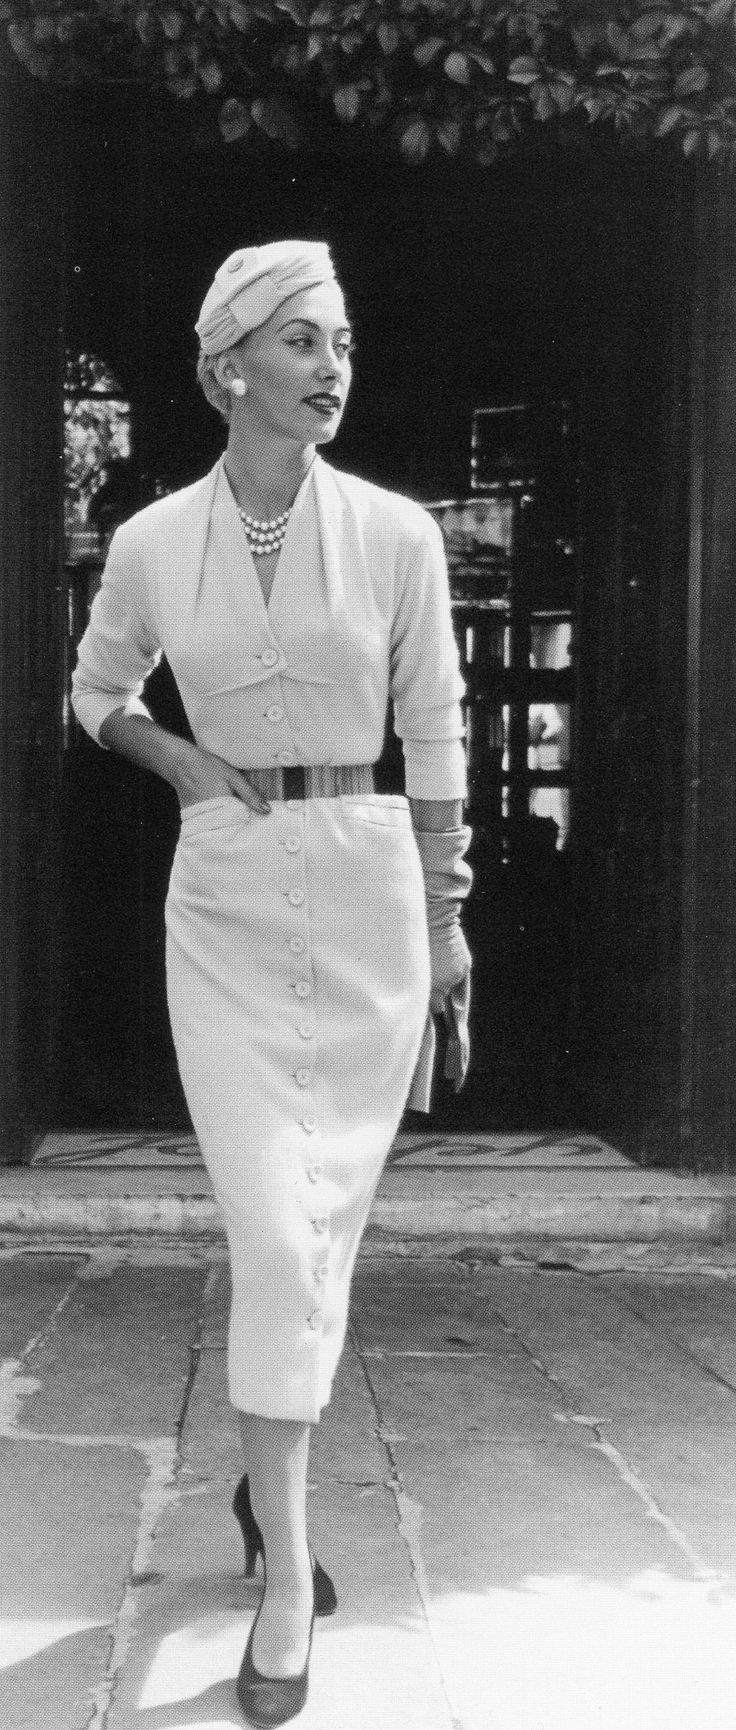 Geneviève in white cashmere button-through dress by Pierre Balmain, photo by Willy Maywald, Paris, 1953